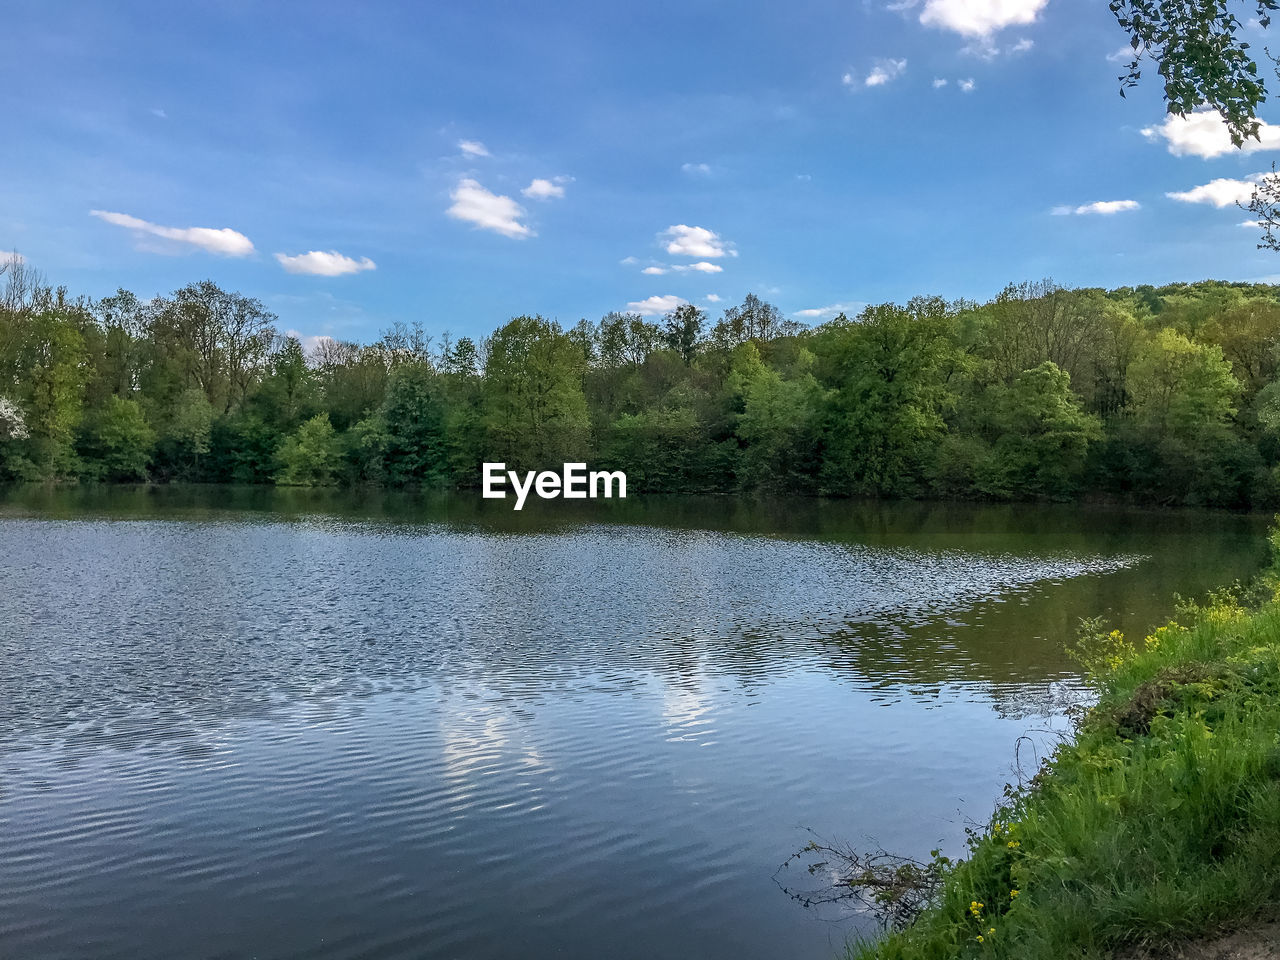 tree, water, plant, scenics - nature, tranquility, lake, beauty in nature, sky, tranquil scene, reflection, cloud - sky, no people, day, non-urban scene, growth, nature, waterfront, green color, idyllic